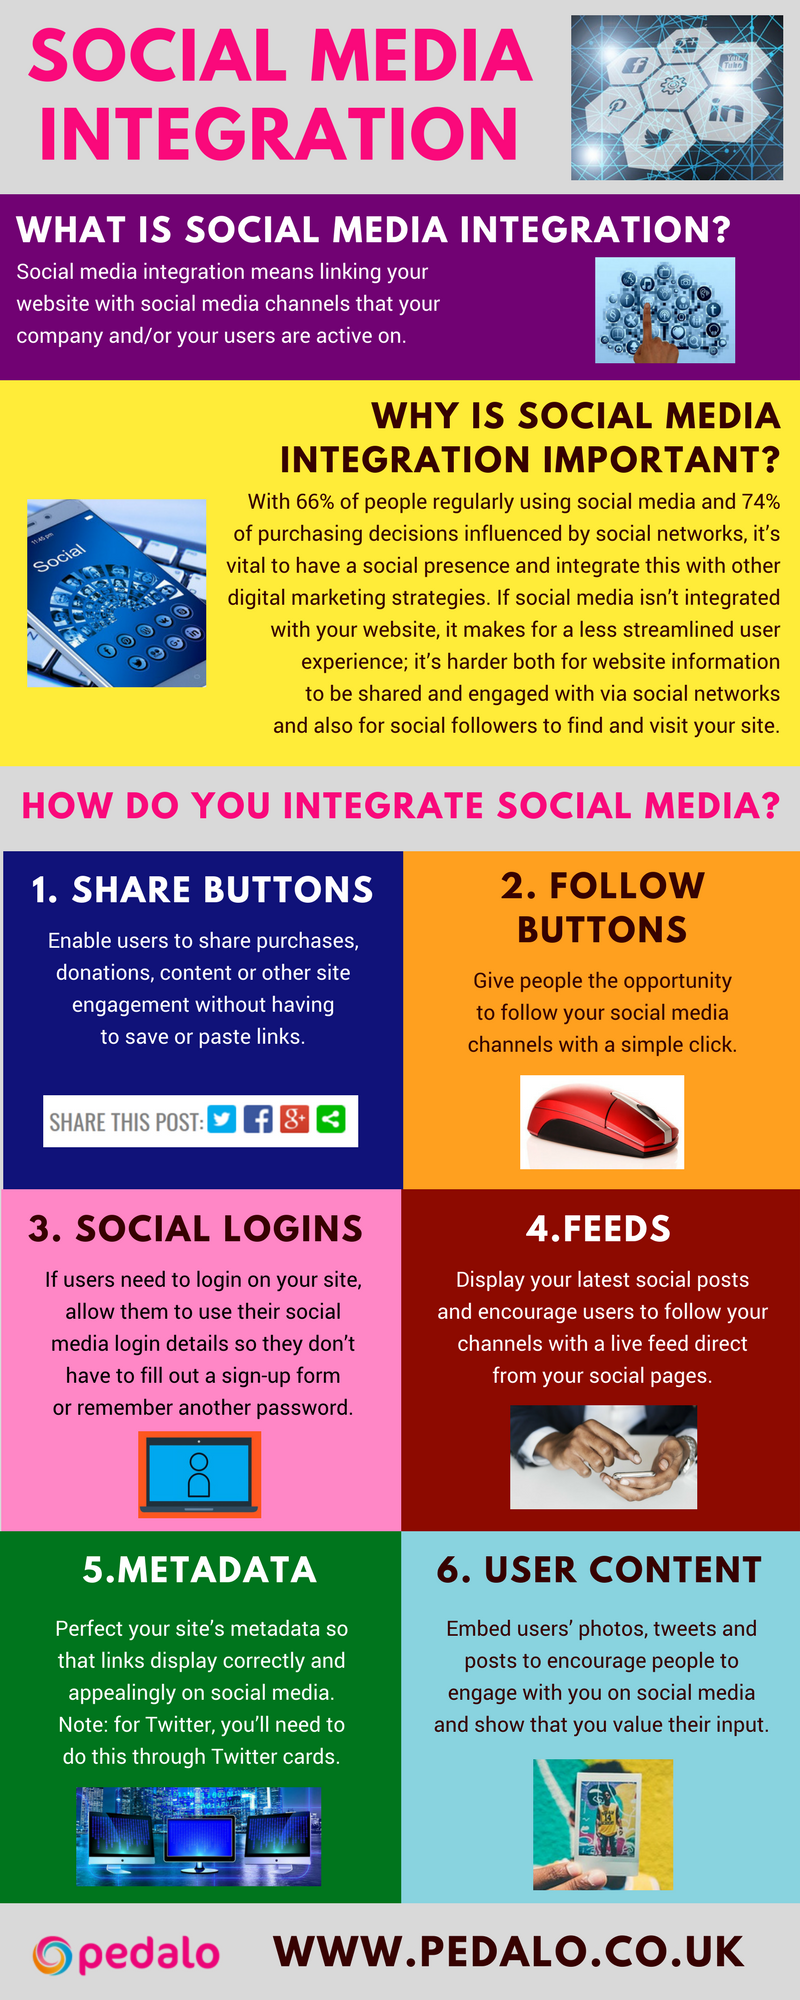 Social-media-integration-infographic by Pedalo